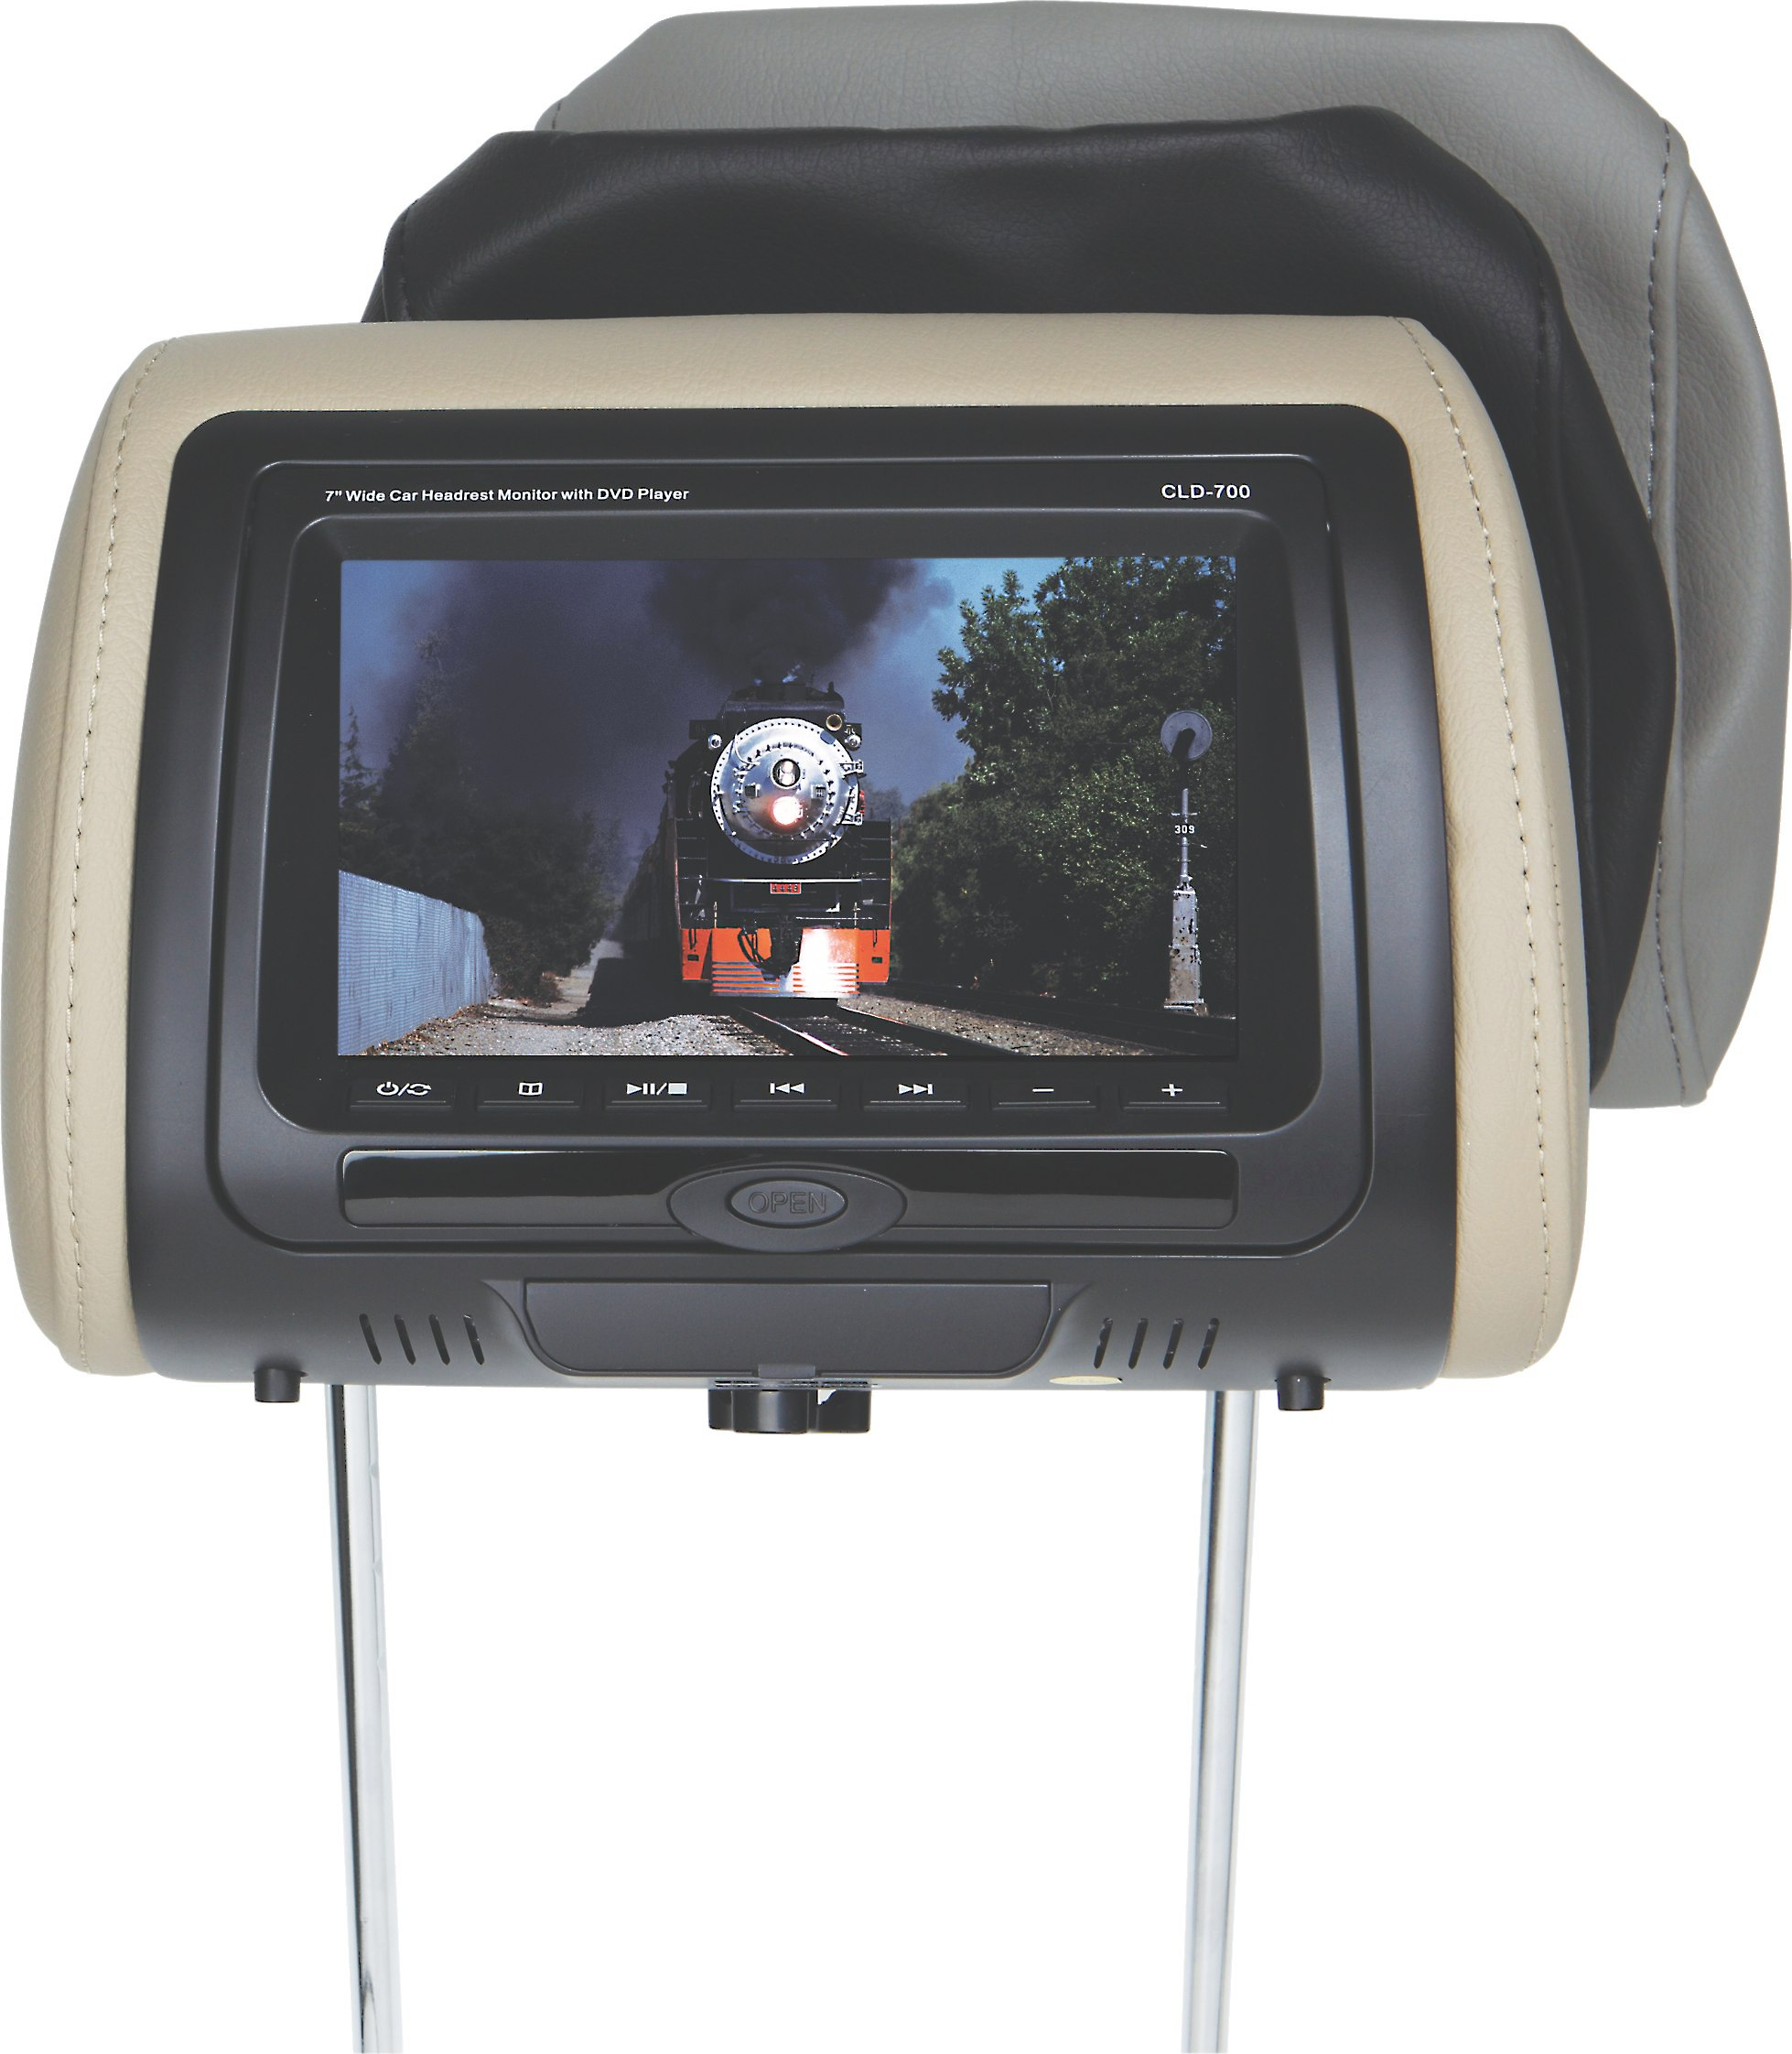 Concept CLD-700 Universal headrest with built-in 7